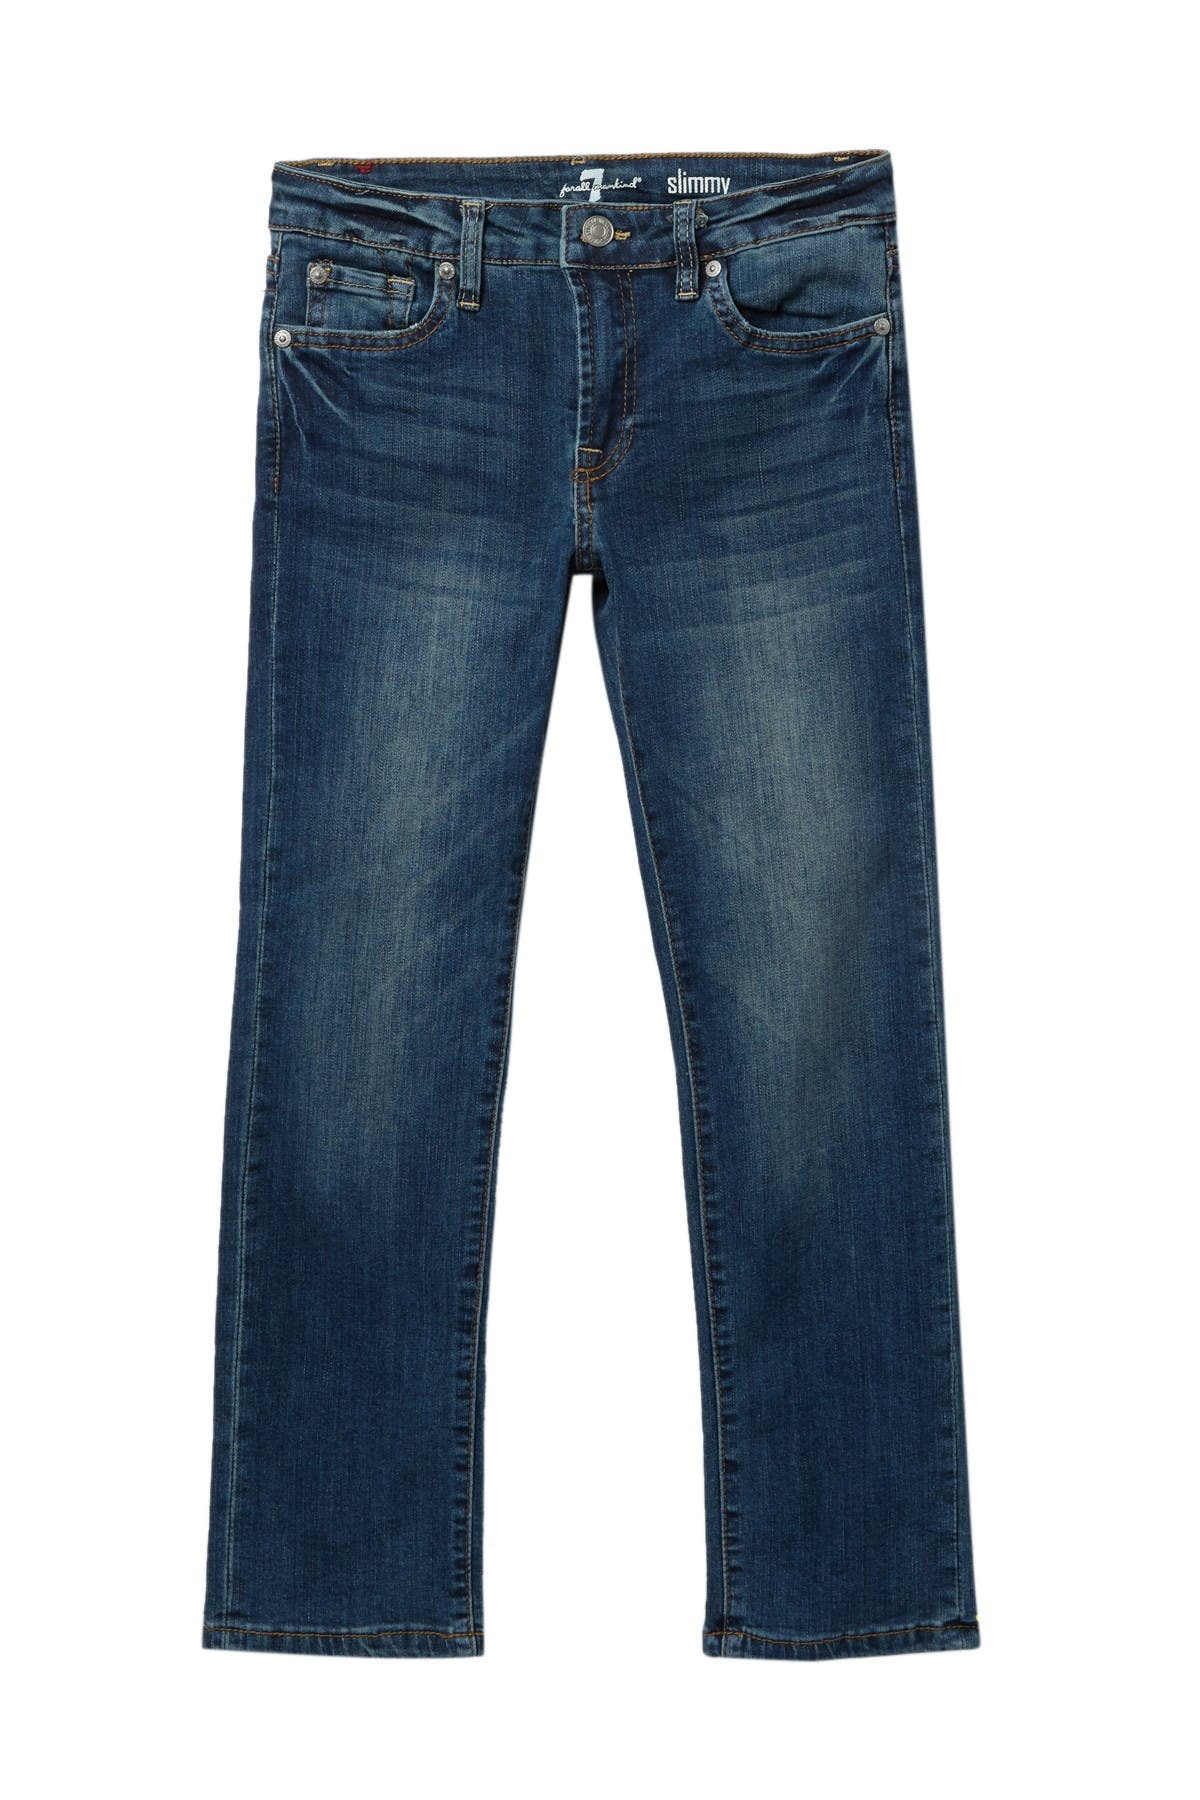 Image of 7 For All Mankind Slimmy 5 Pocket Jeans